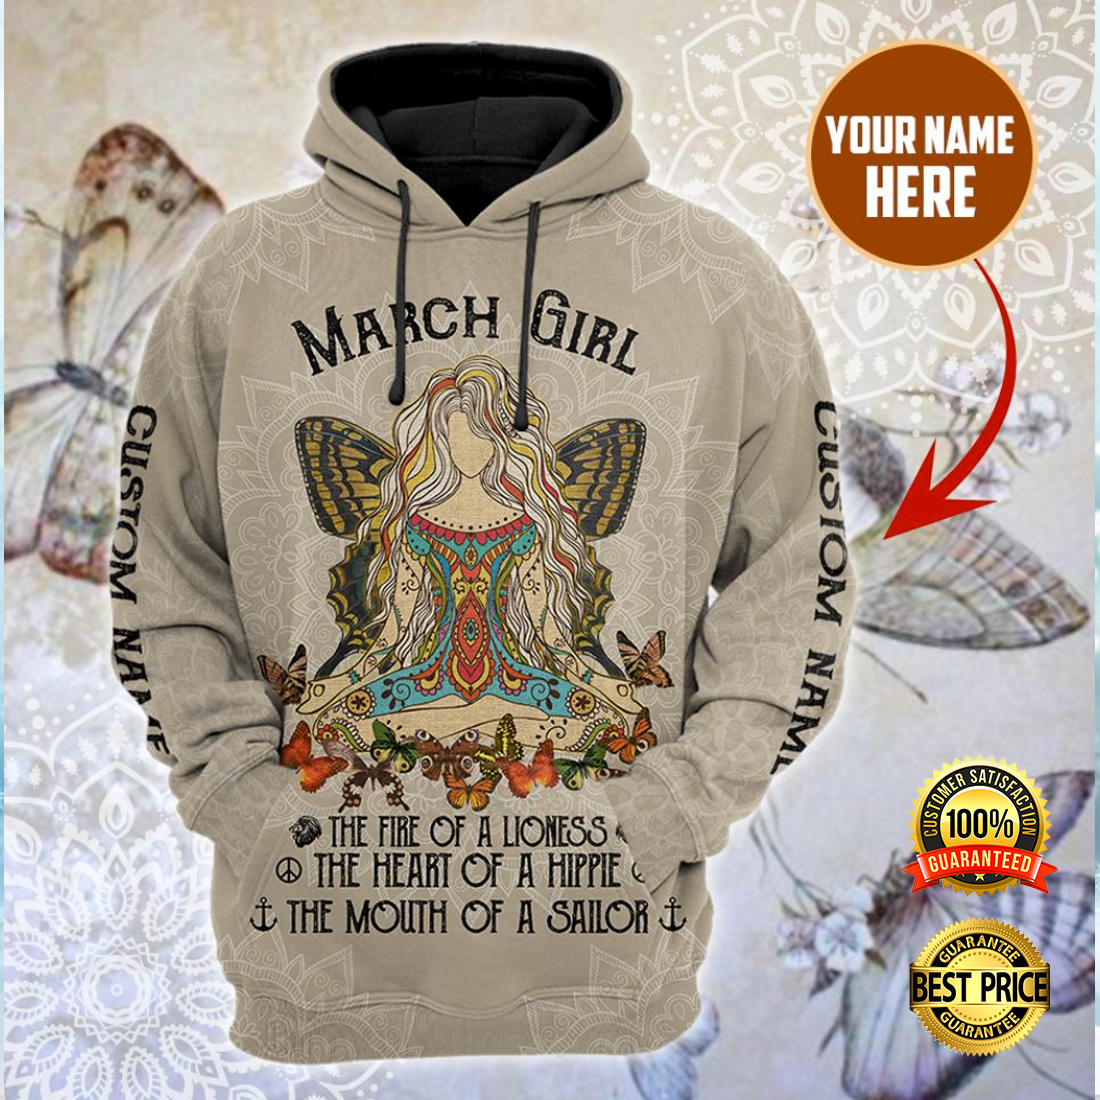 PERSONALIZED NAMASTE MARCH GIRL ALL OVER PRINTED 3D HOODIE 5